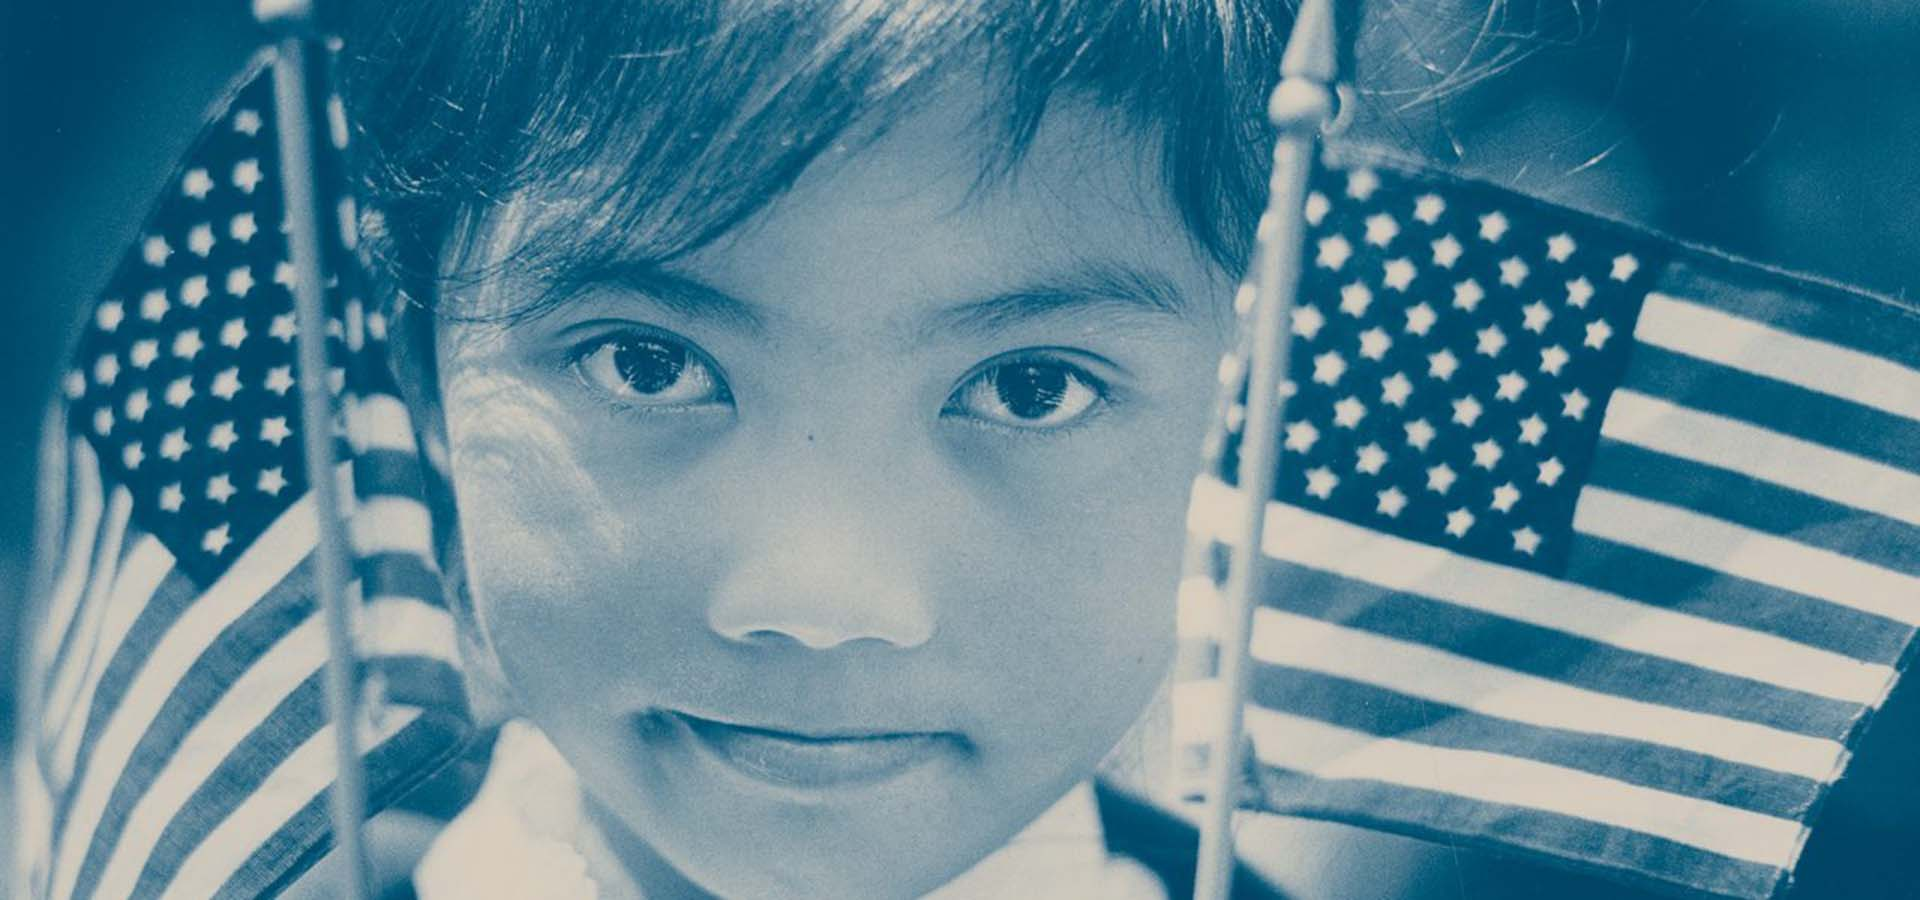 Blue tone photography of a minority child holding American flags.